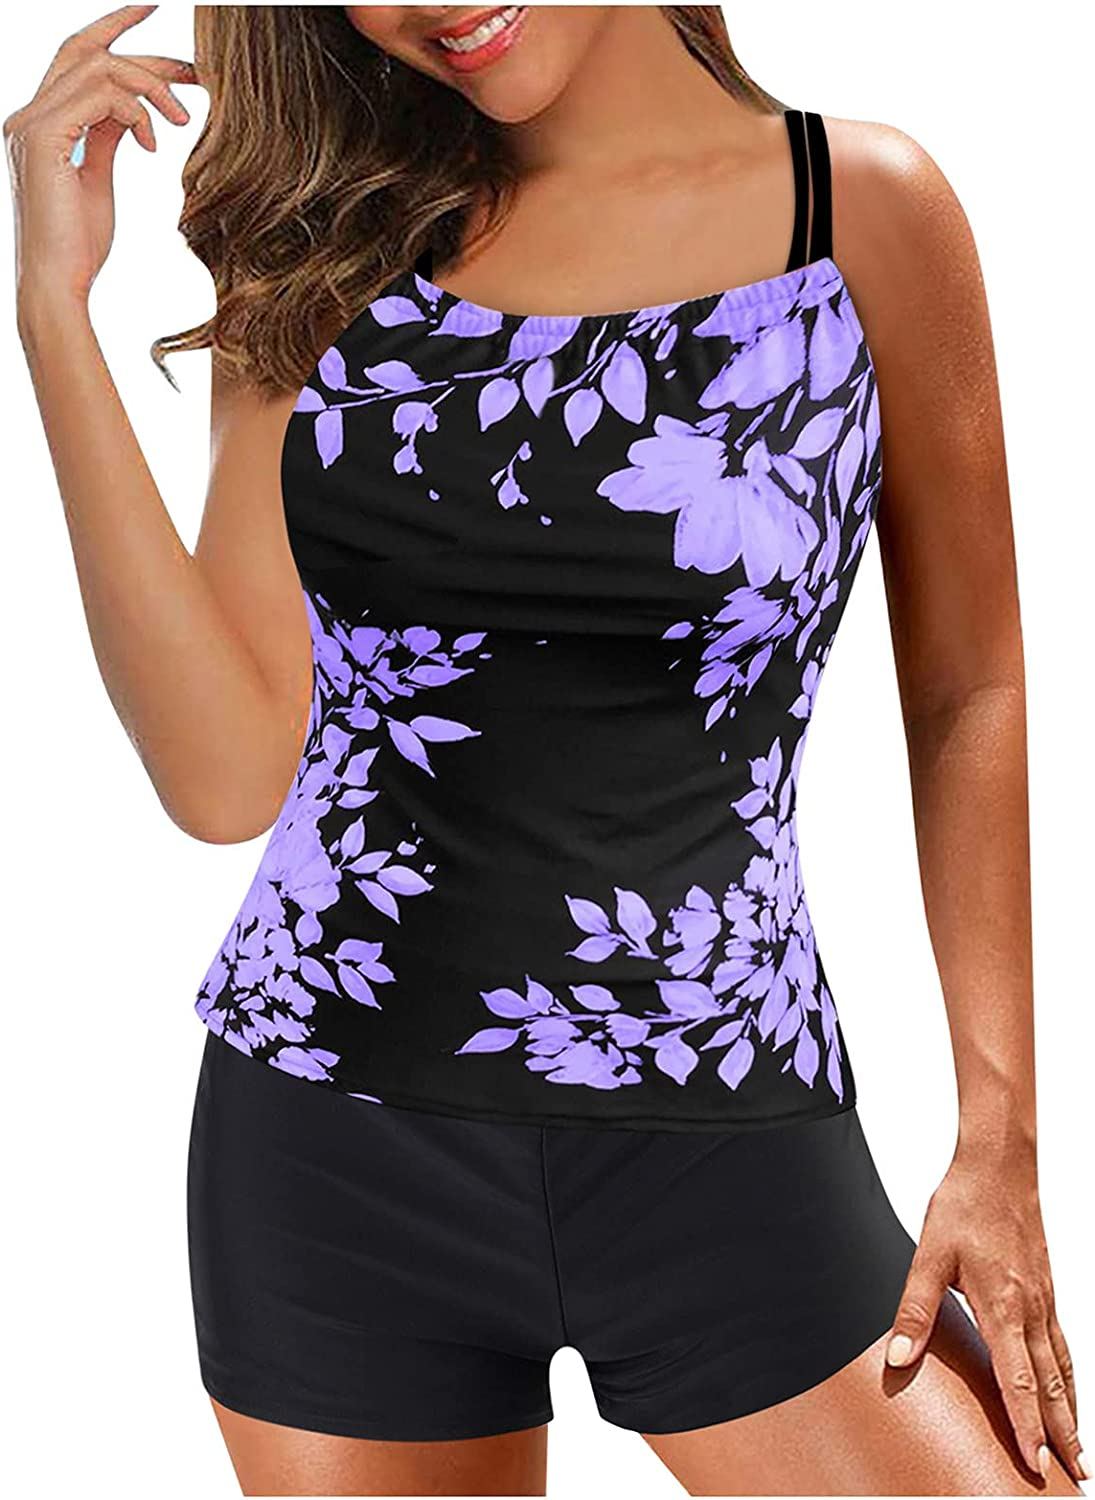 FeiFei66 Womens Tankini Swimsuits Plus Size Digital Print Strappy Back Swimdress Top with Boyshorts Two Piece Bathing Suits